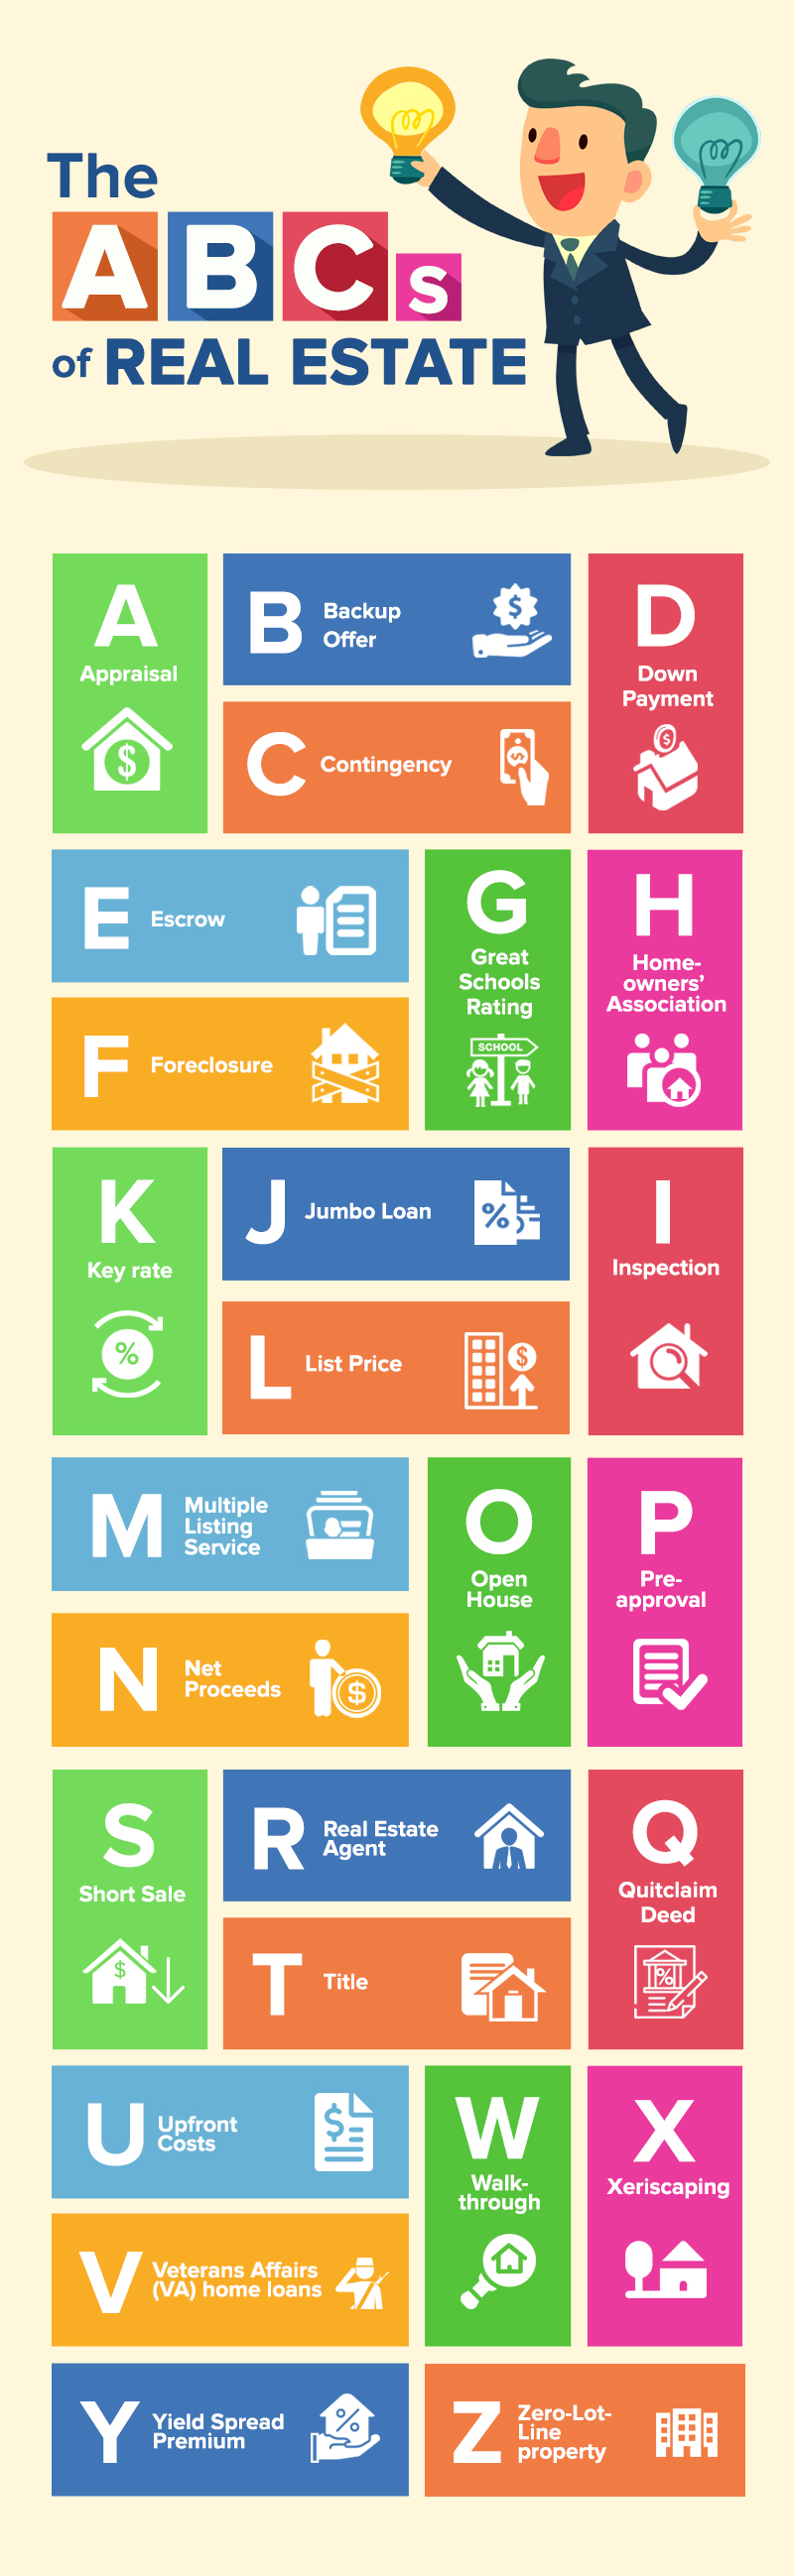 The ABCs of Real Estate.jpg